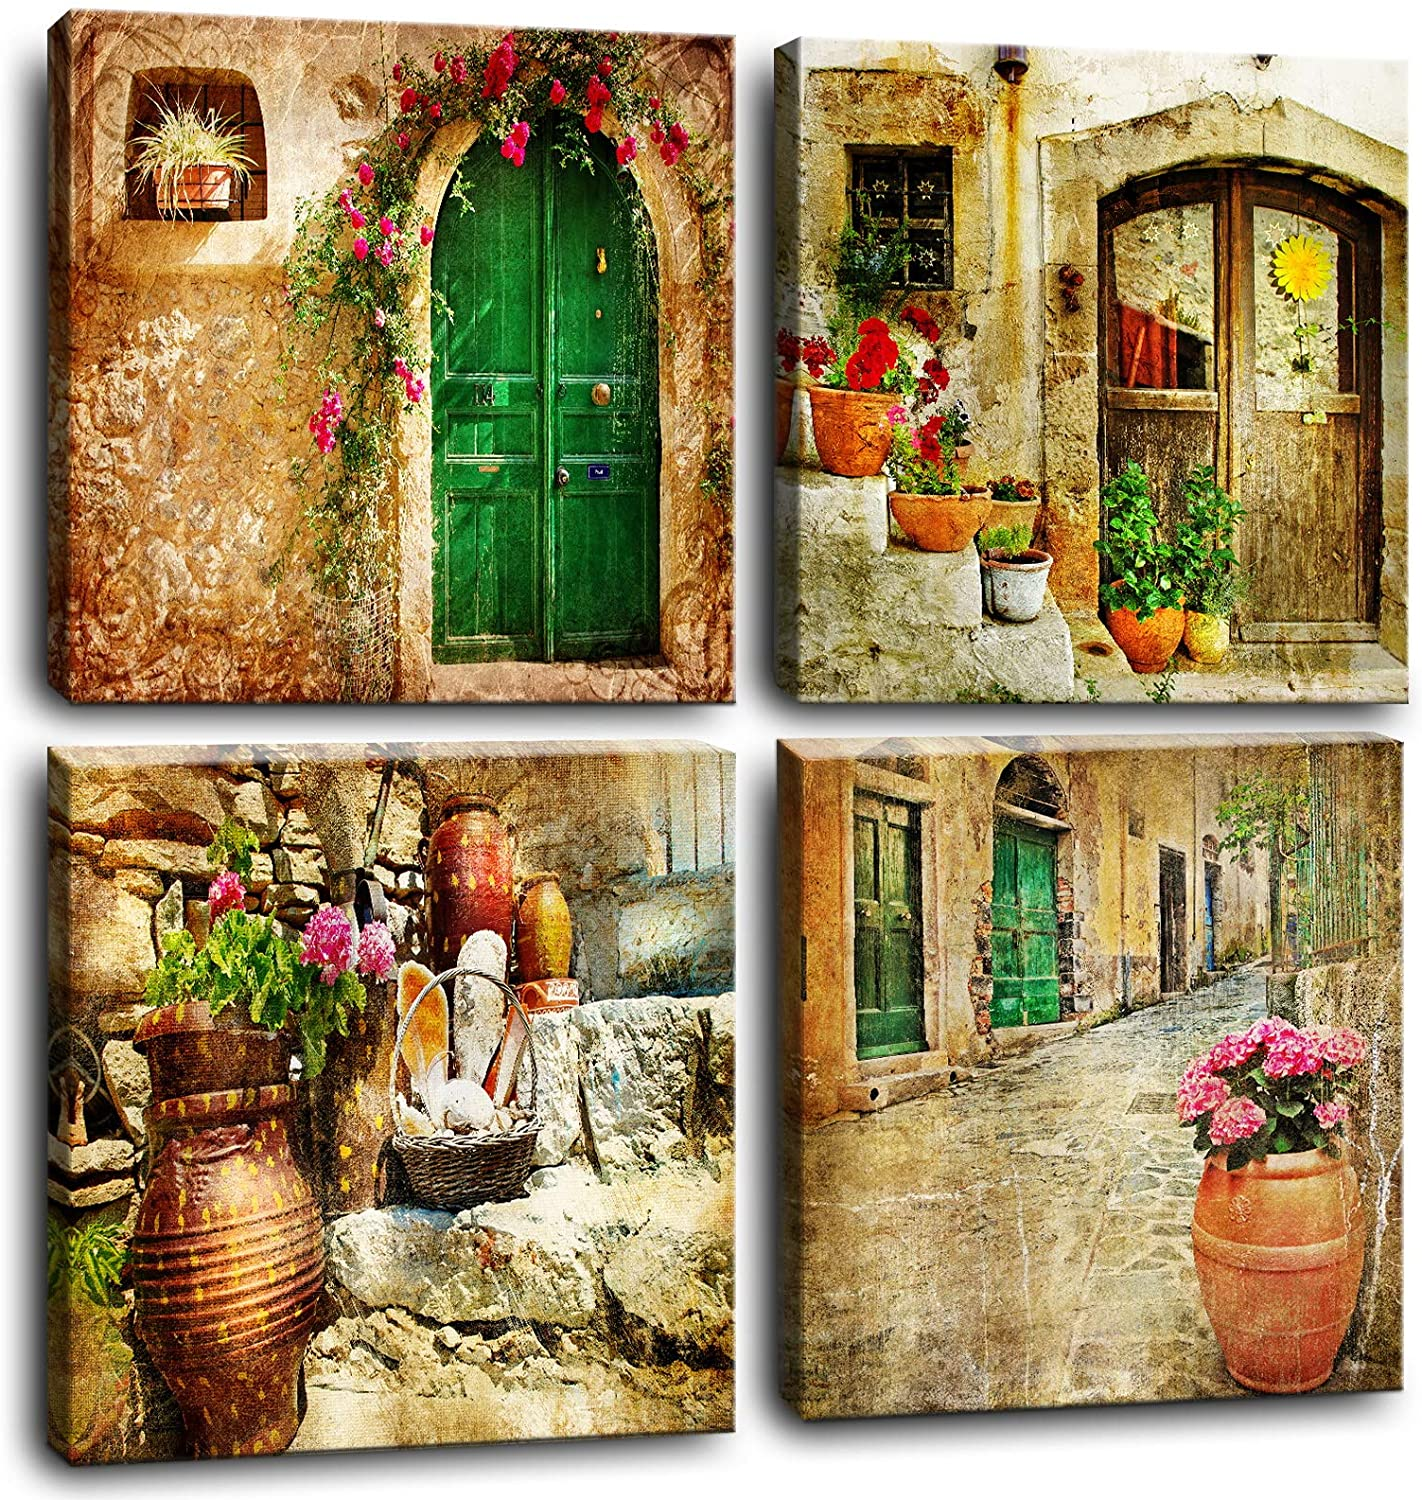 Rustic Wall Dining Room Sunflowers Bathroom Decor Wall Art Kitchen Wall Decor Farmhouse Country Bedroom Canvas Wall Art Paintings Prints Pictures Framed Artwork Decorations for Living Room Set 4 Pcs